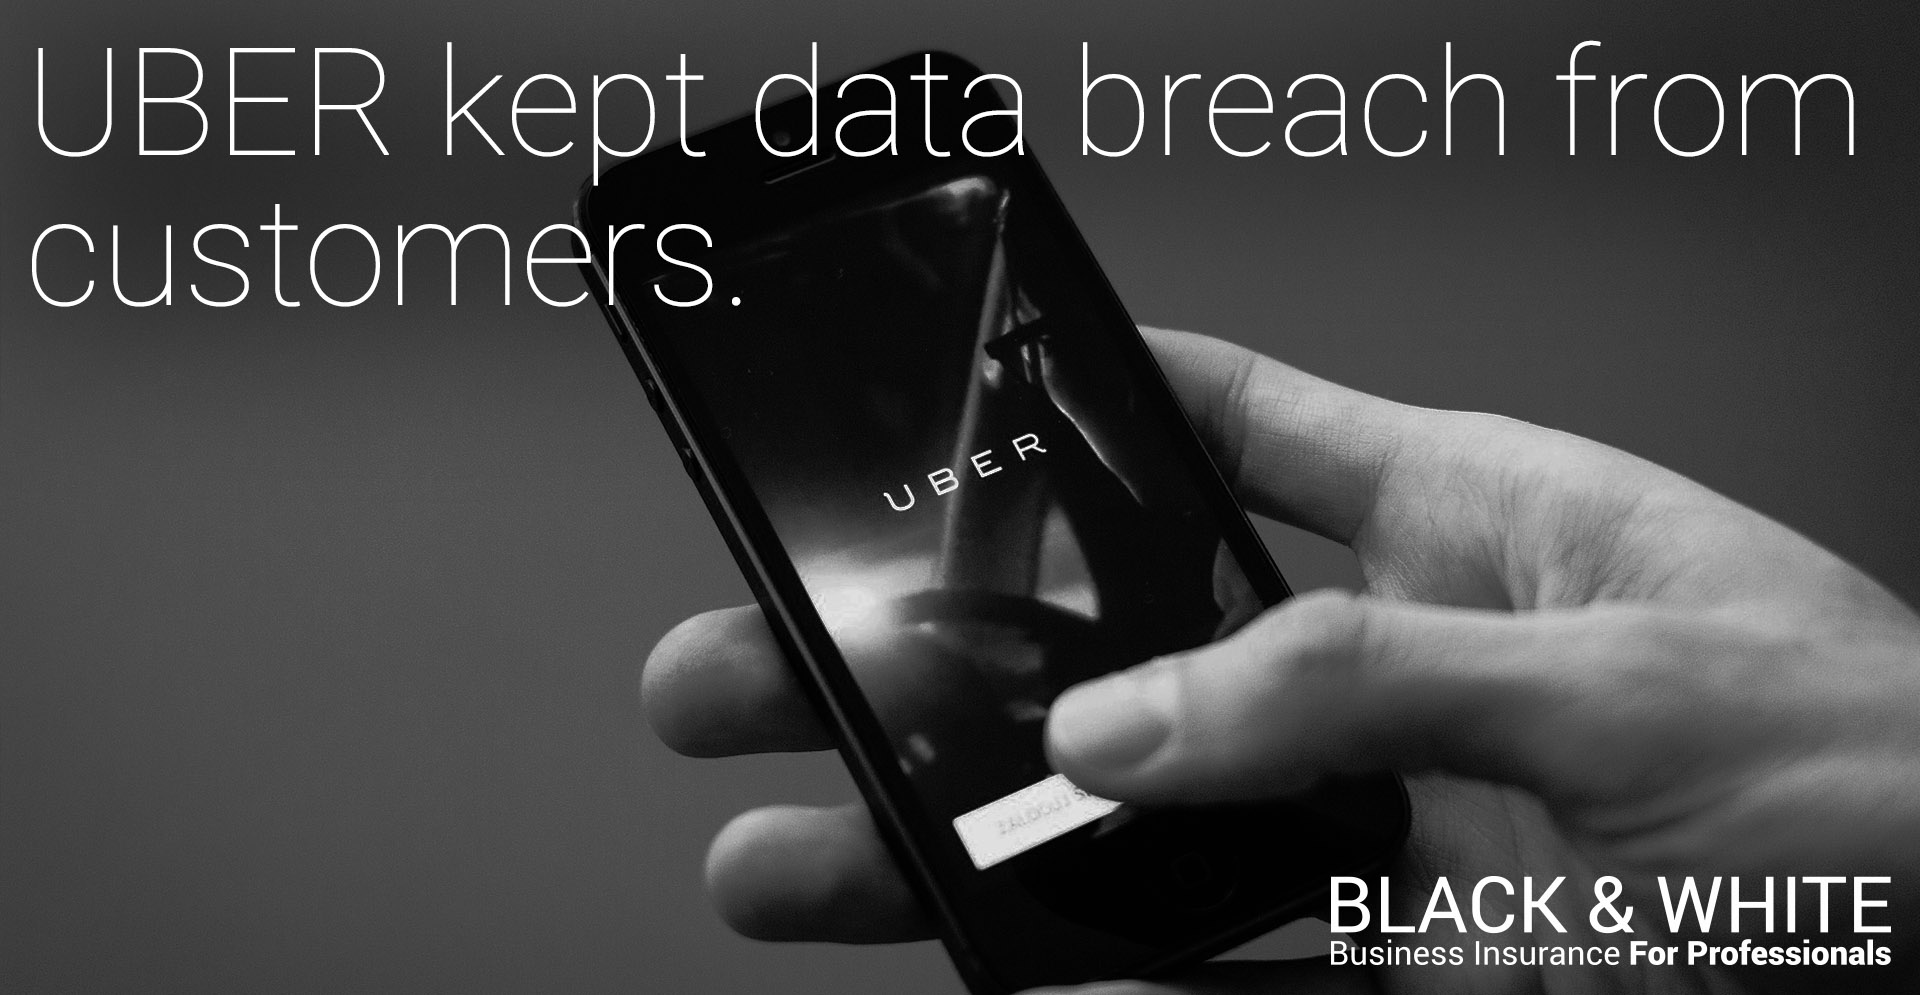 uber data breach | black and white insurance